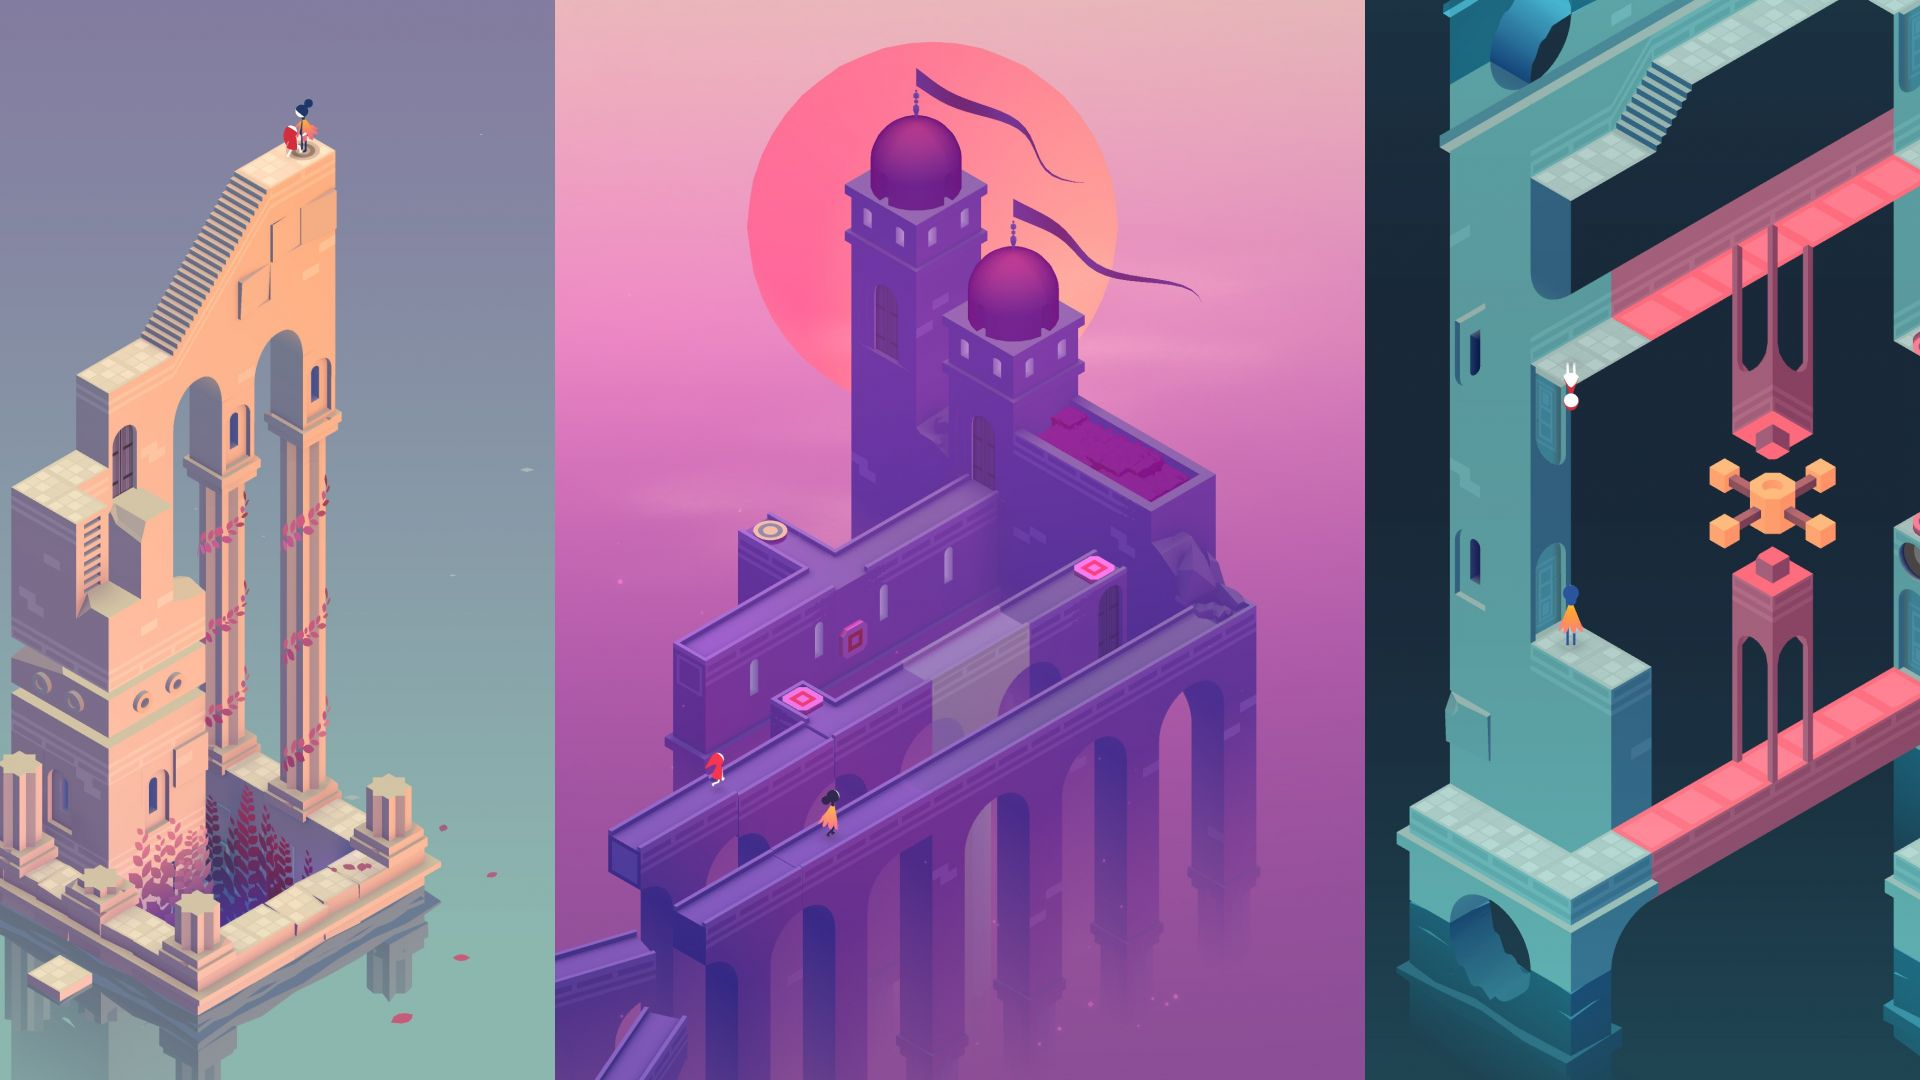 Wallpaper Monument valley 2, gaming, video